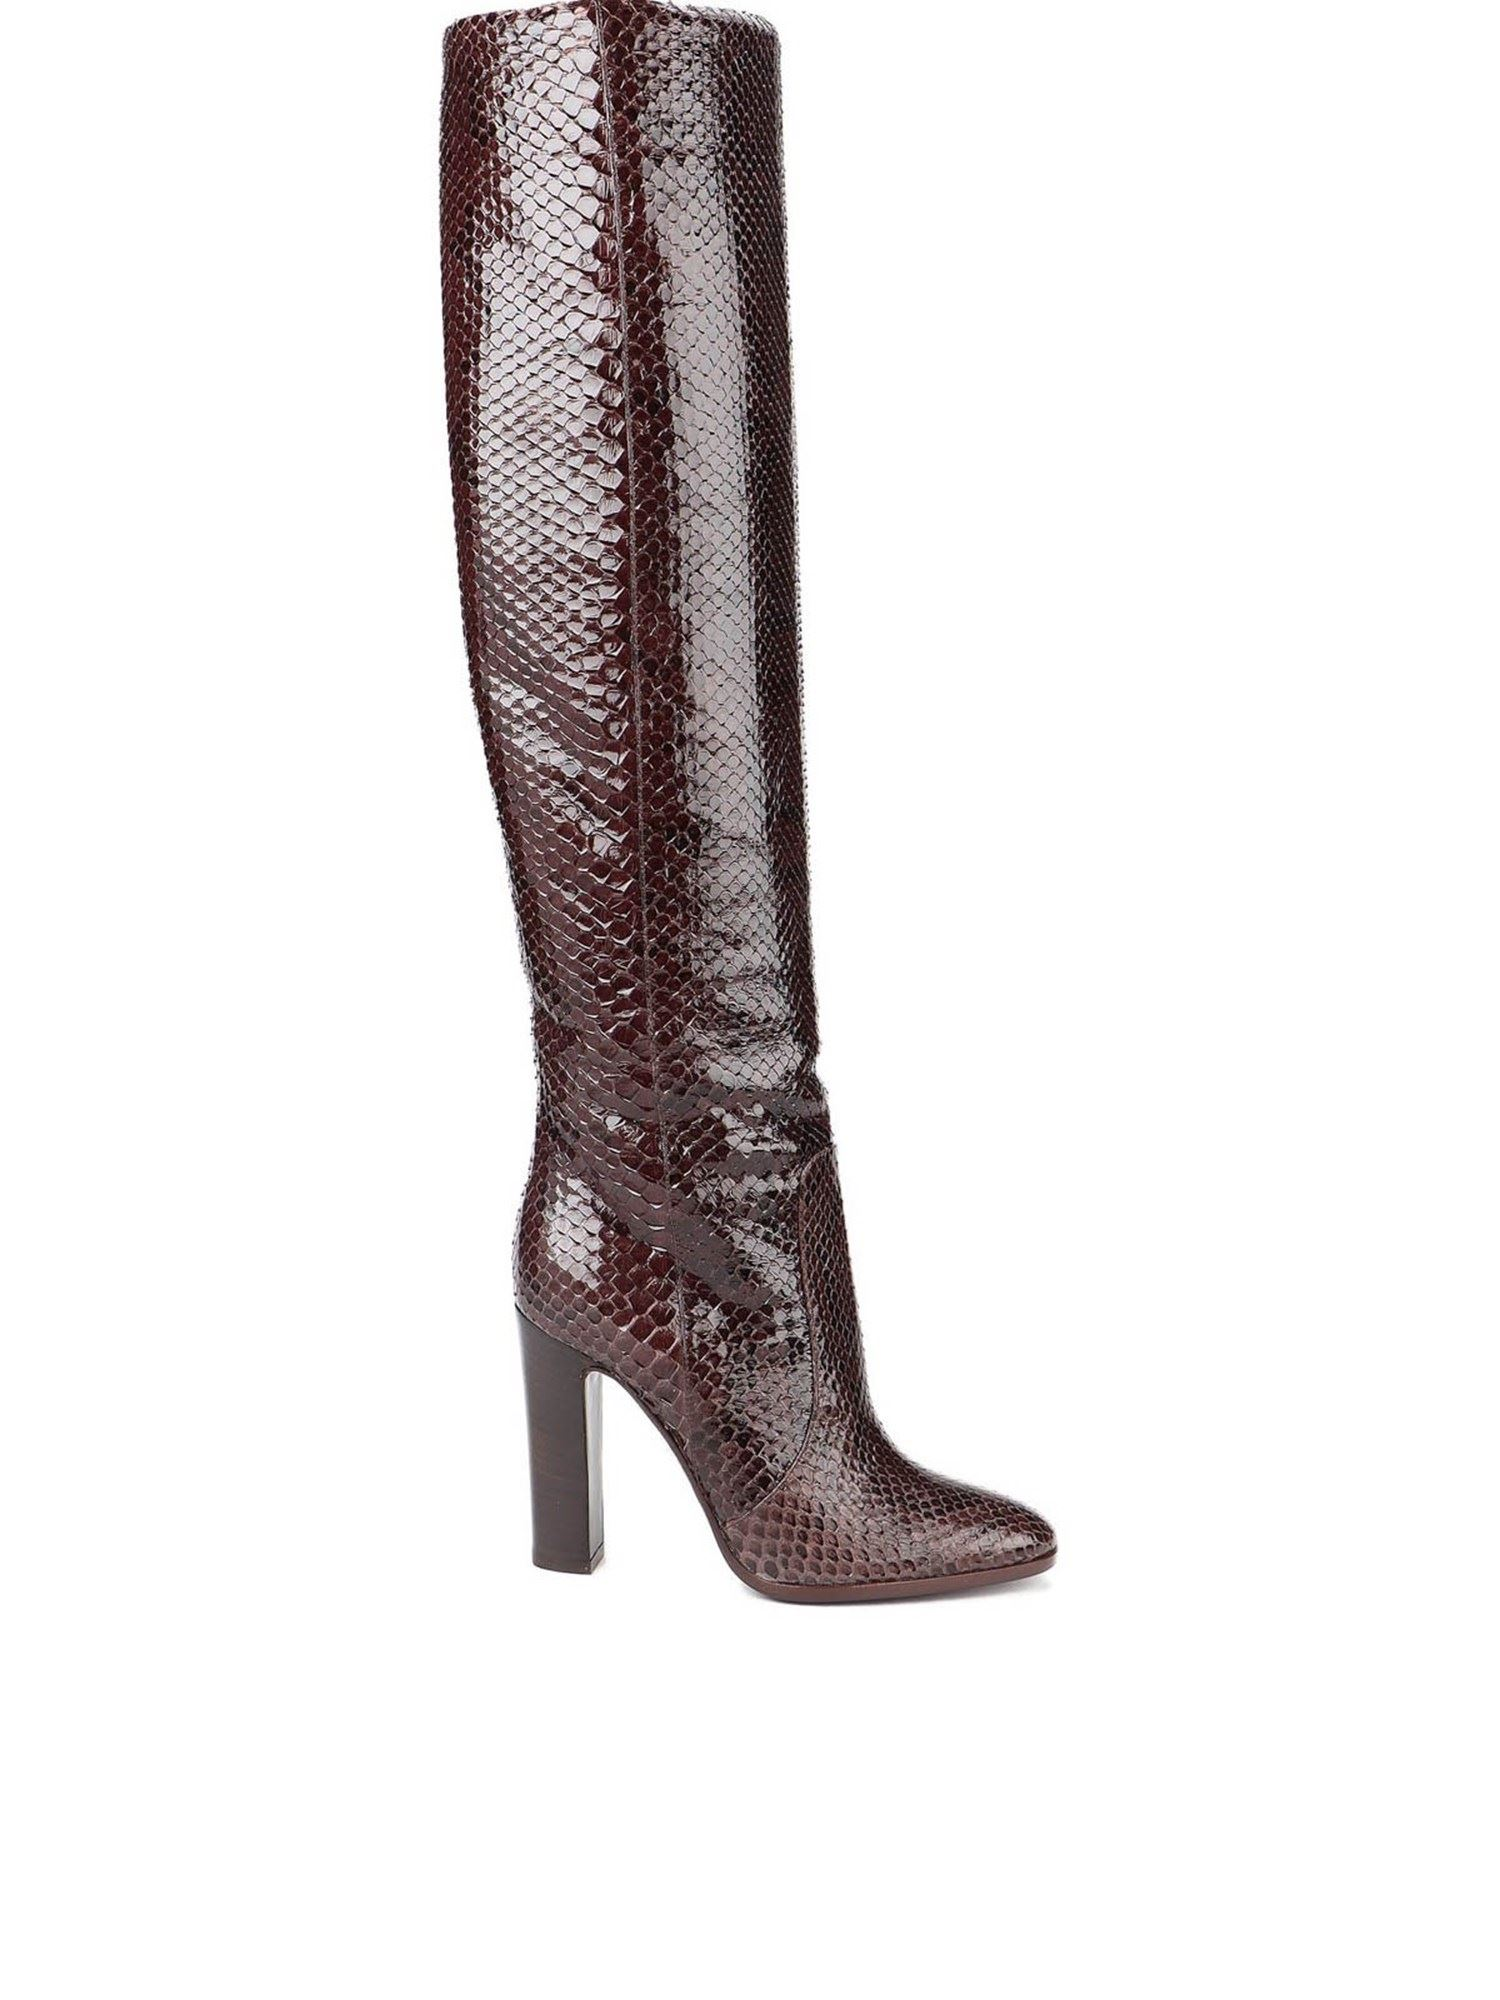 Dolce & Gabbana Leathers PATENT PYTHON LEATHER BOOTS IN BROWN